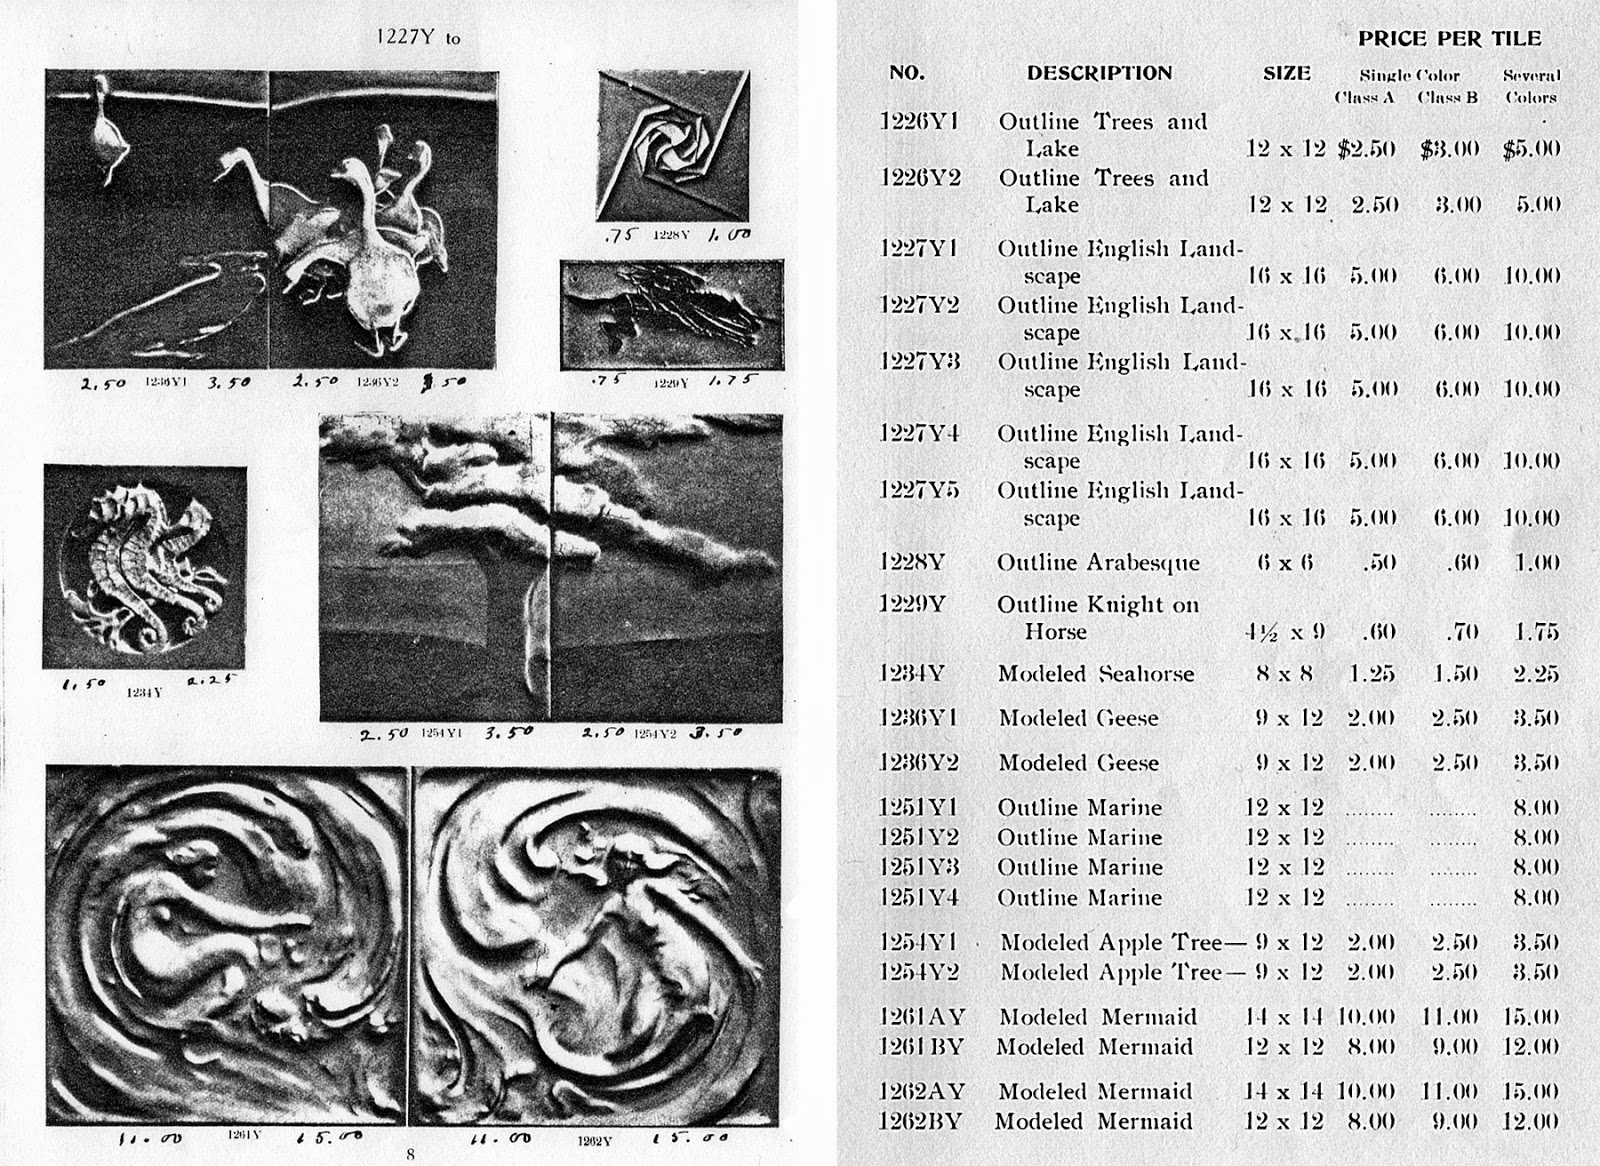 according to decorative arts historian richard mohr rookwoods architectural faience color range at least until about 1910 had greater chromatic - Faience Colore